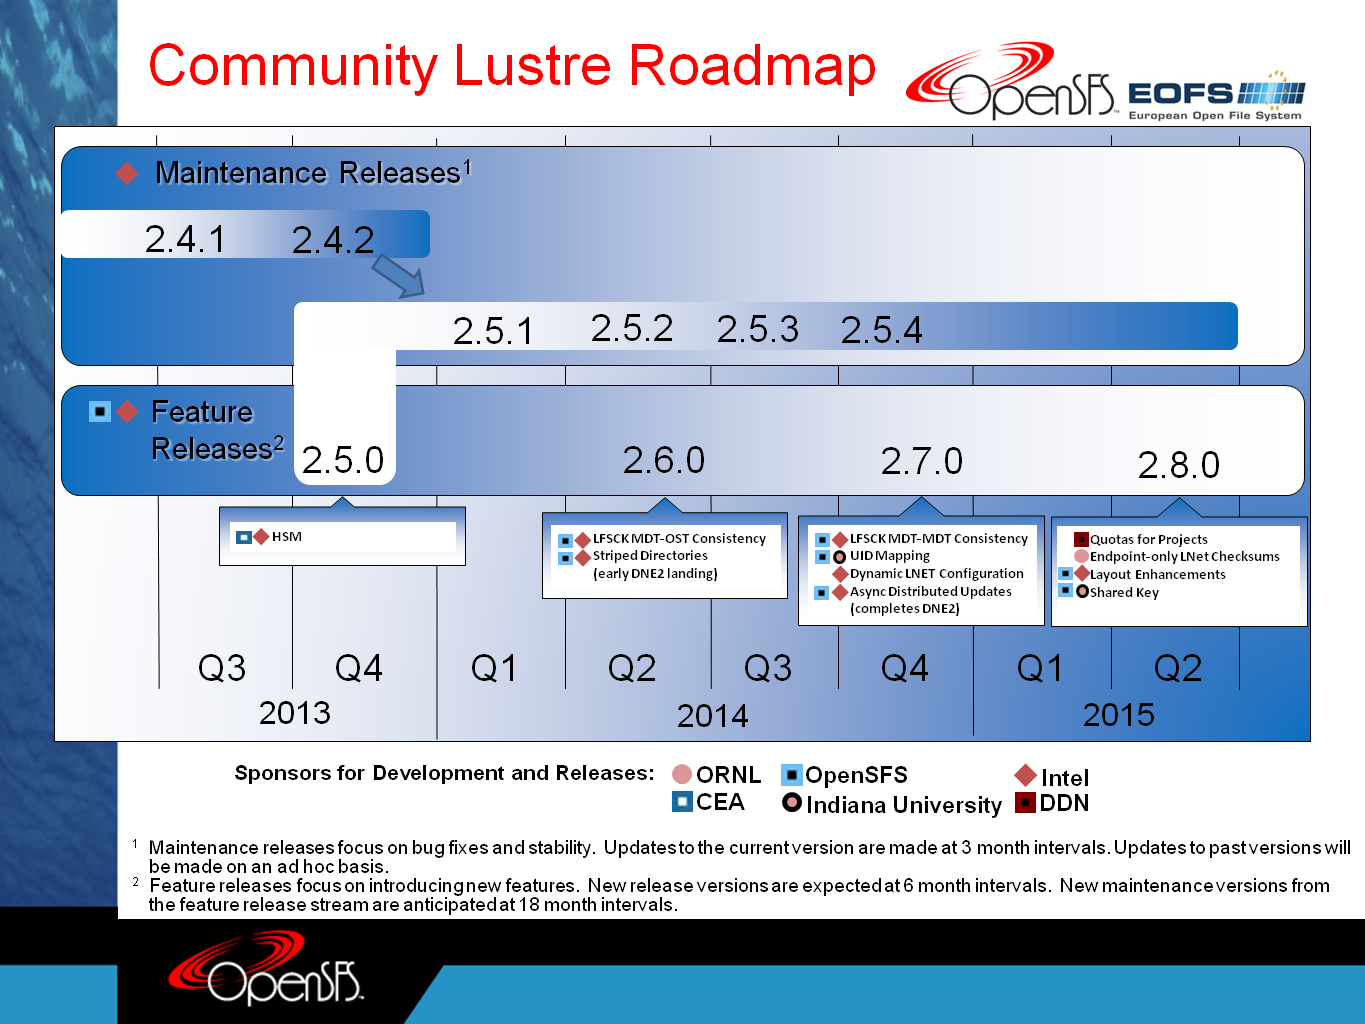 Community Lustre Roadmap_2014-03-05